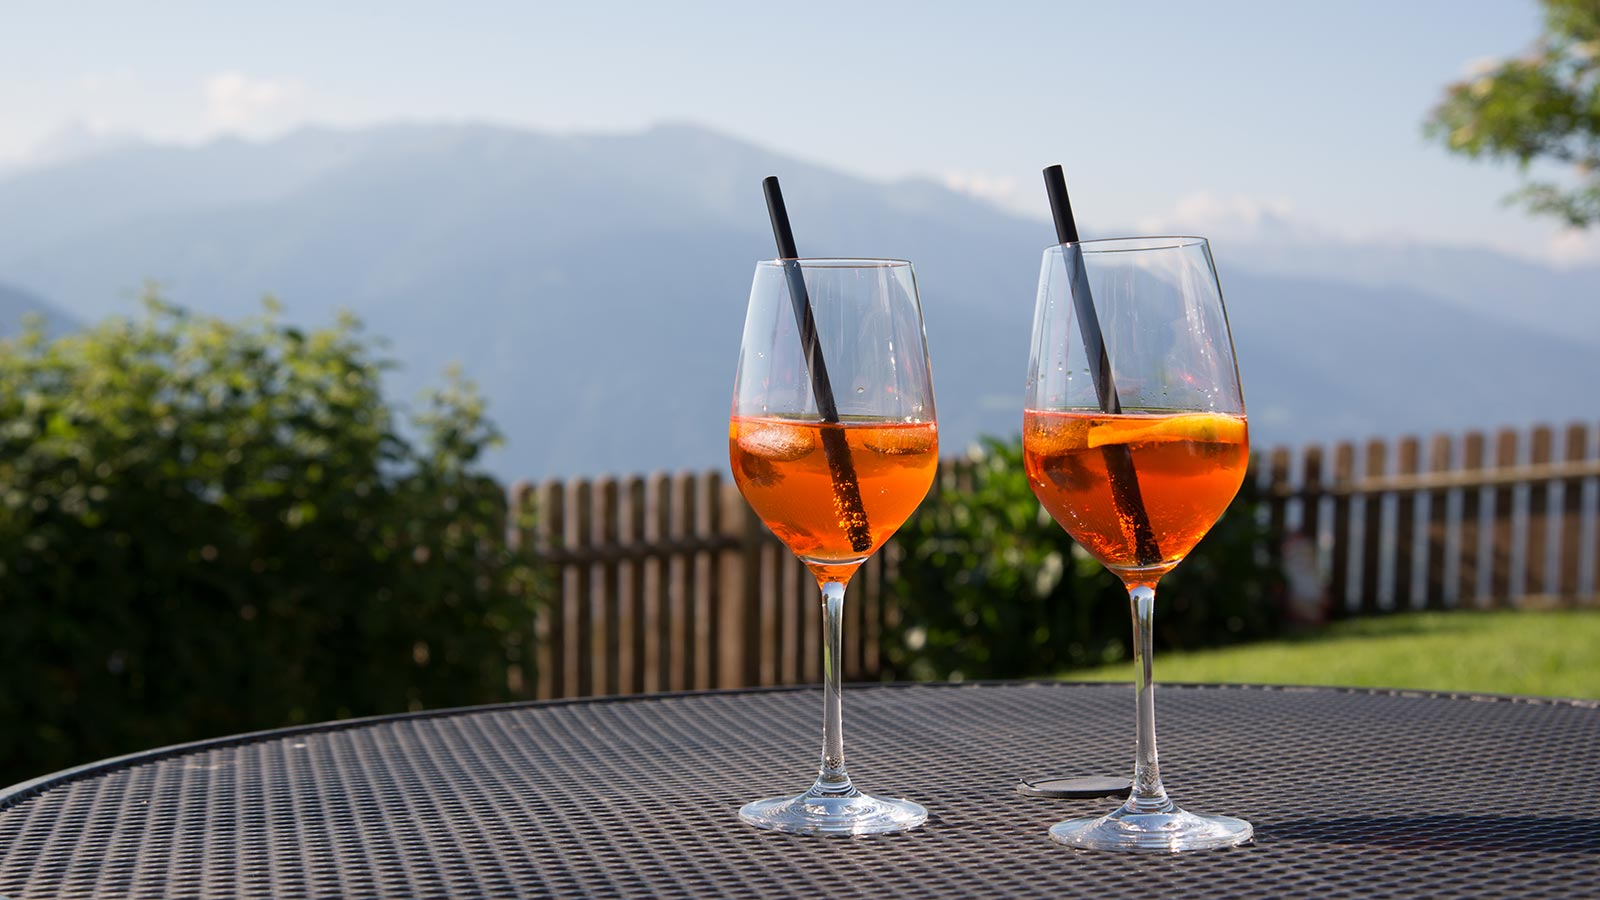 Aperitif in the foreground on a table on the terrace of the Wiesenrain